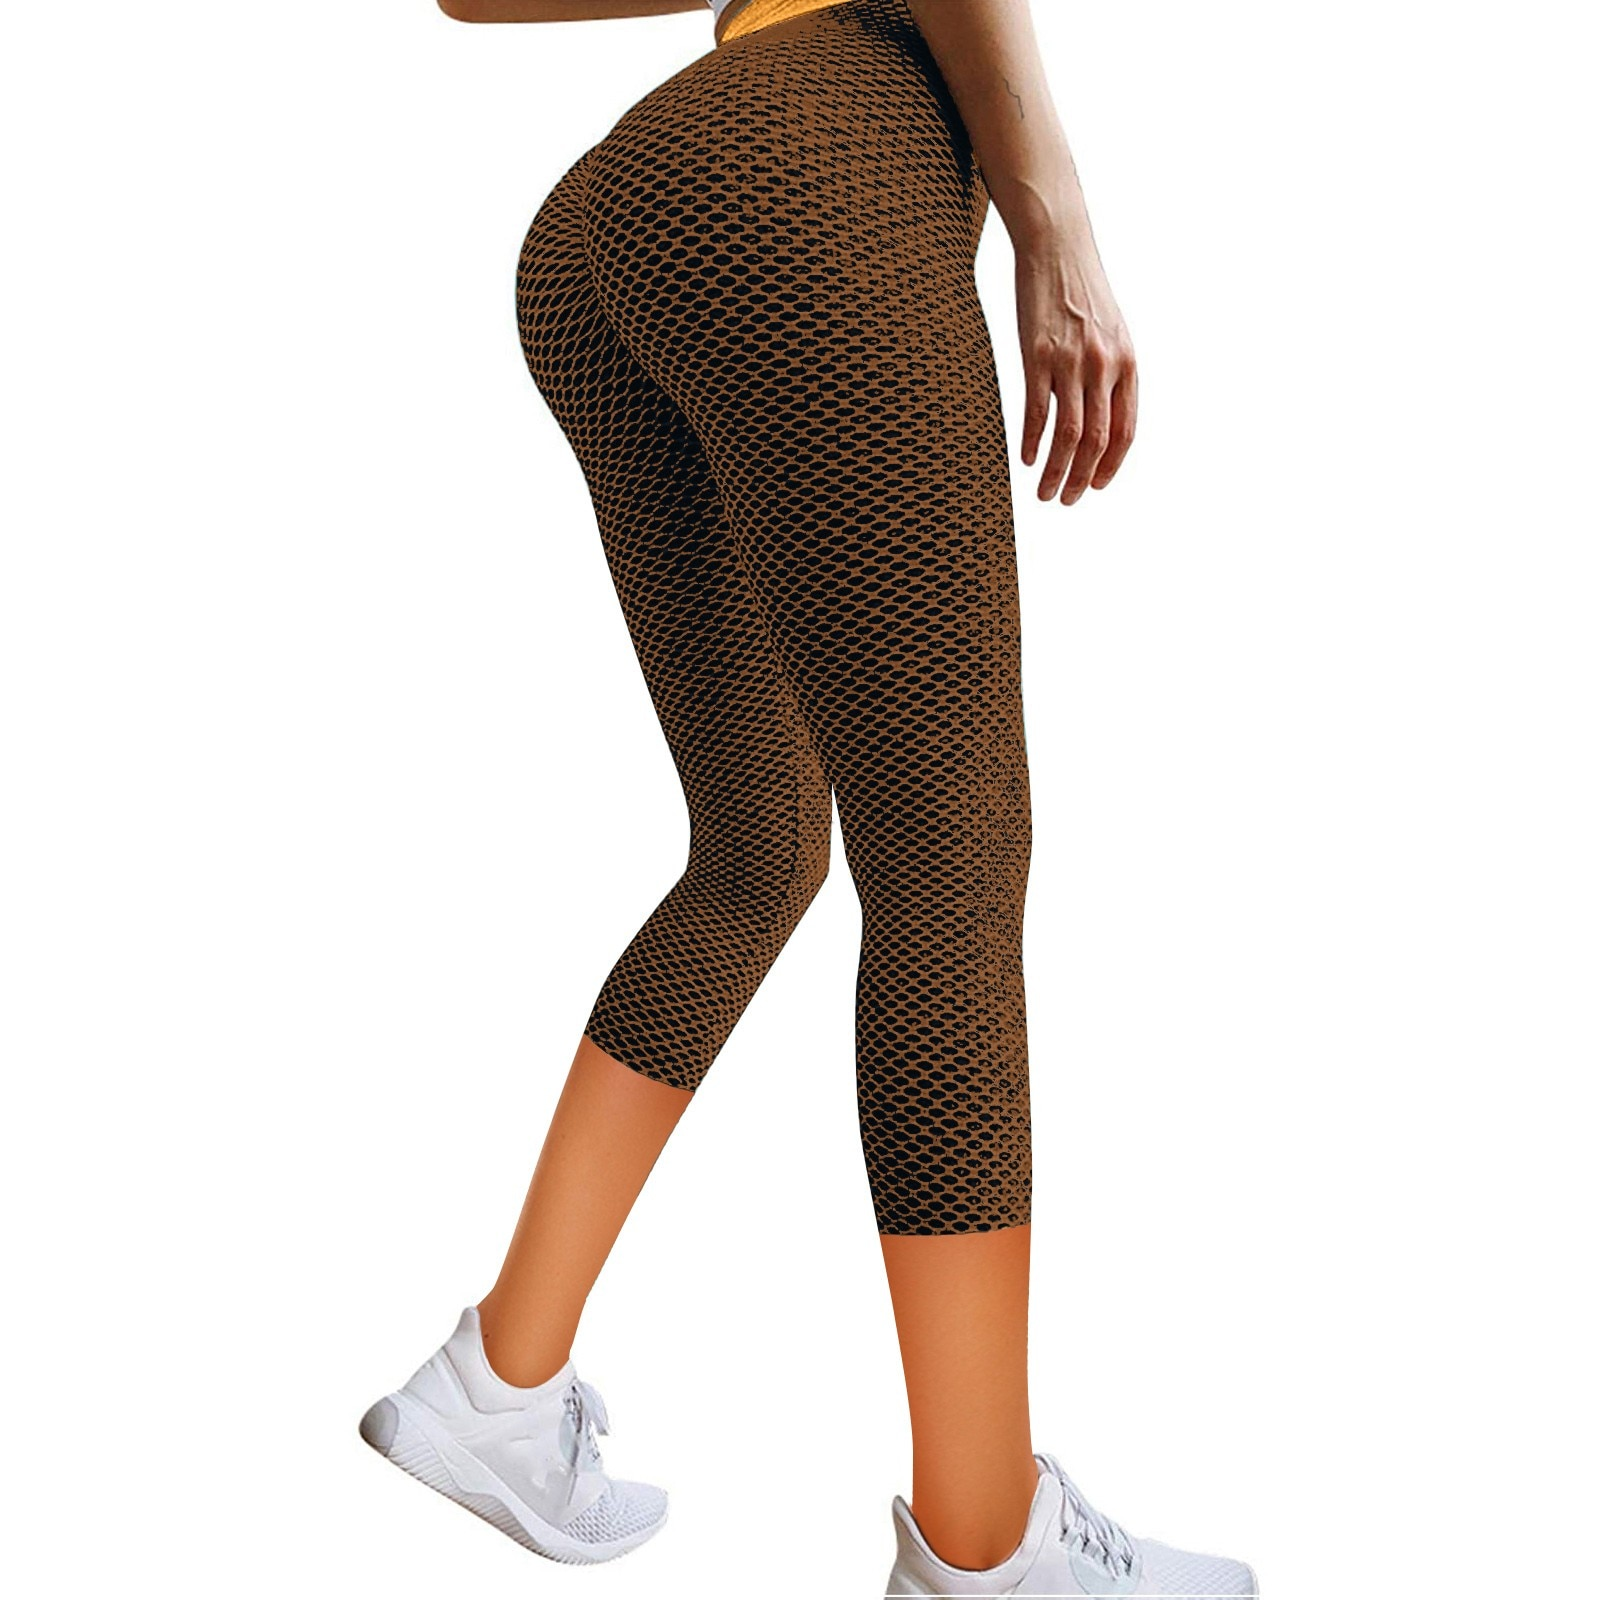 Women's Stretch Yo ga Leggings Fitness Running Gym Sports Pockets Active Pants pantalones de mujer gym clothing sport pant